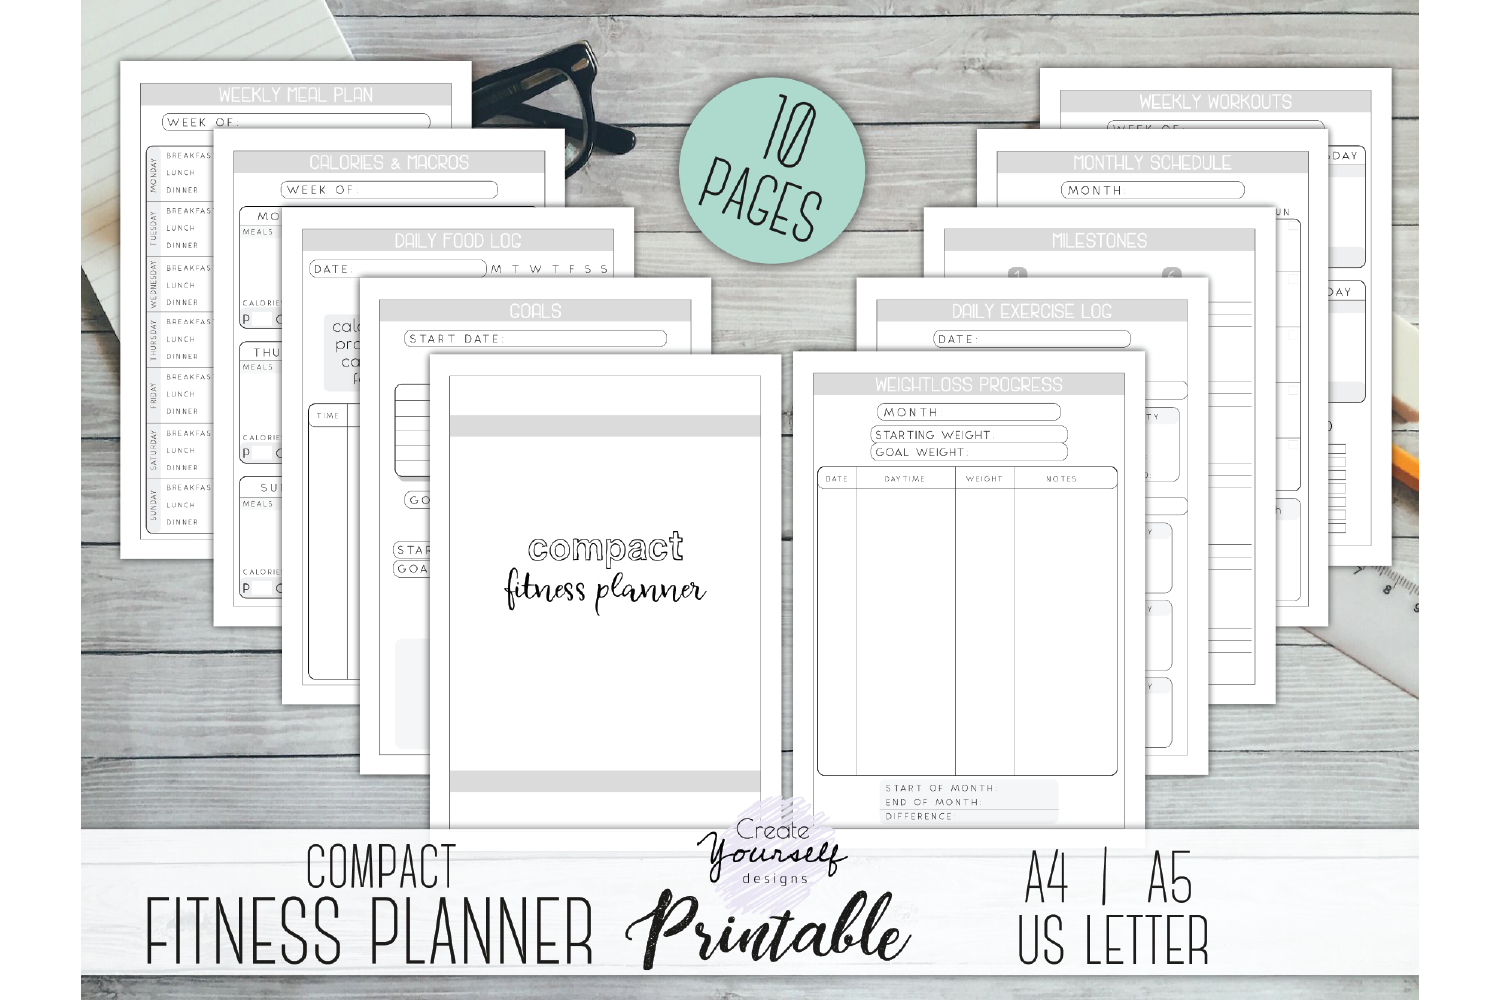 photo regarding Fitness Planner Printable known as Health planner printable - healthy magazine, fat decline tracker